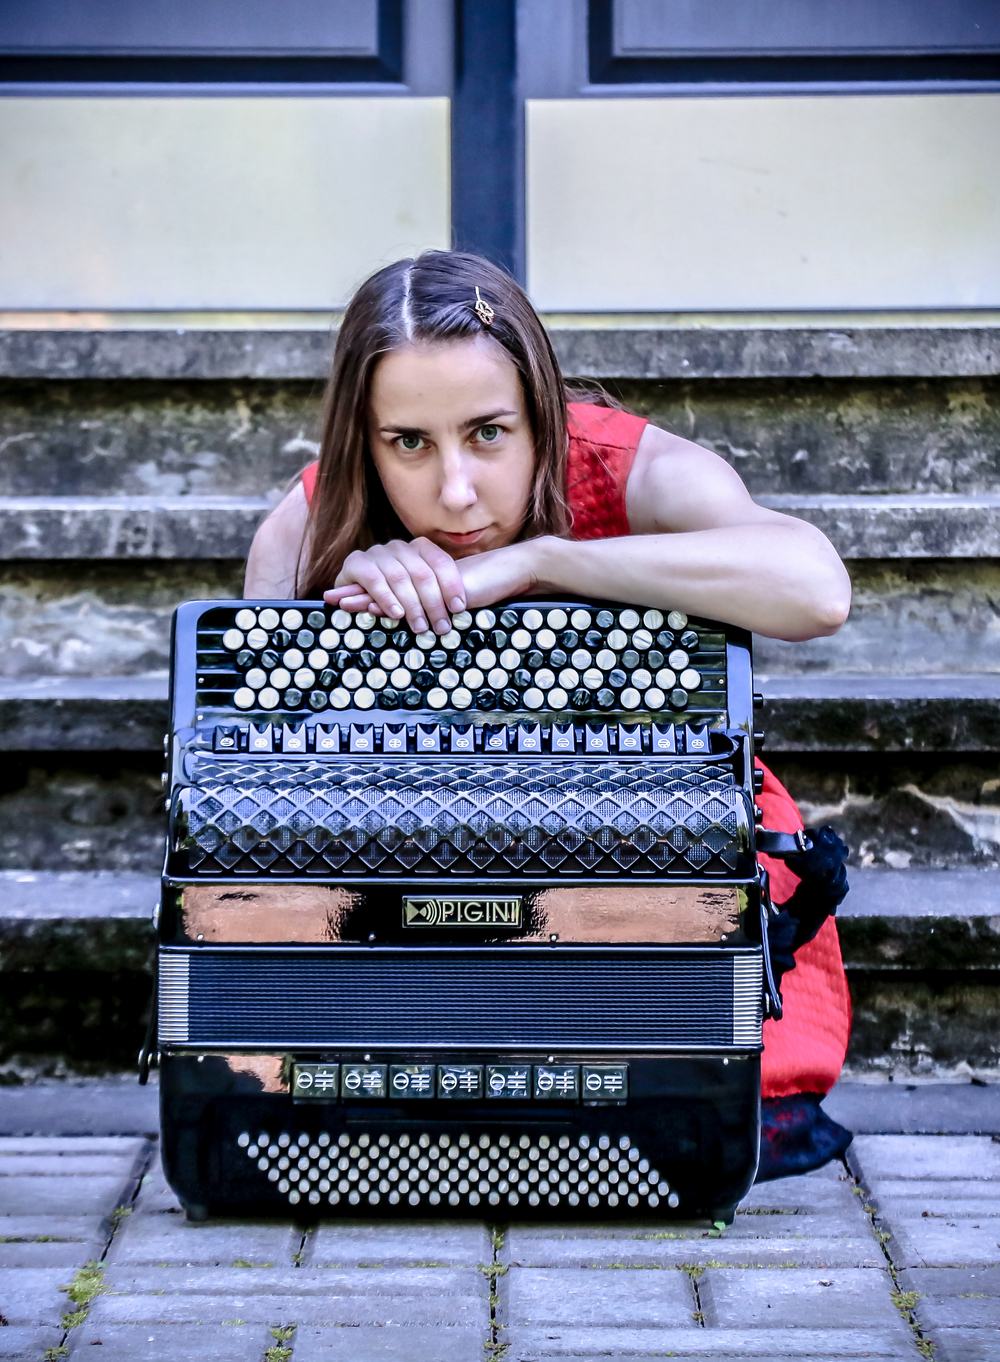 Reet Laube - an accordionist; Pigini Accordion